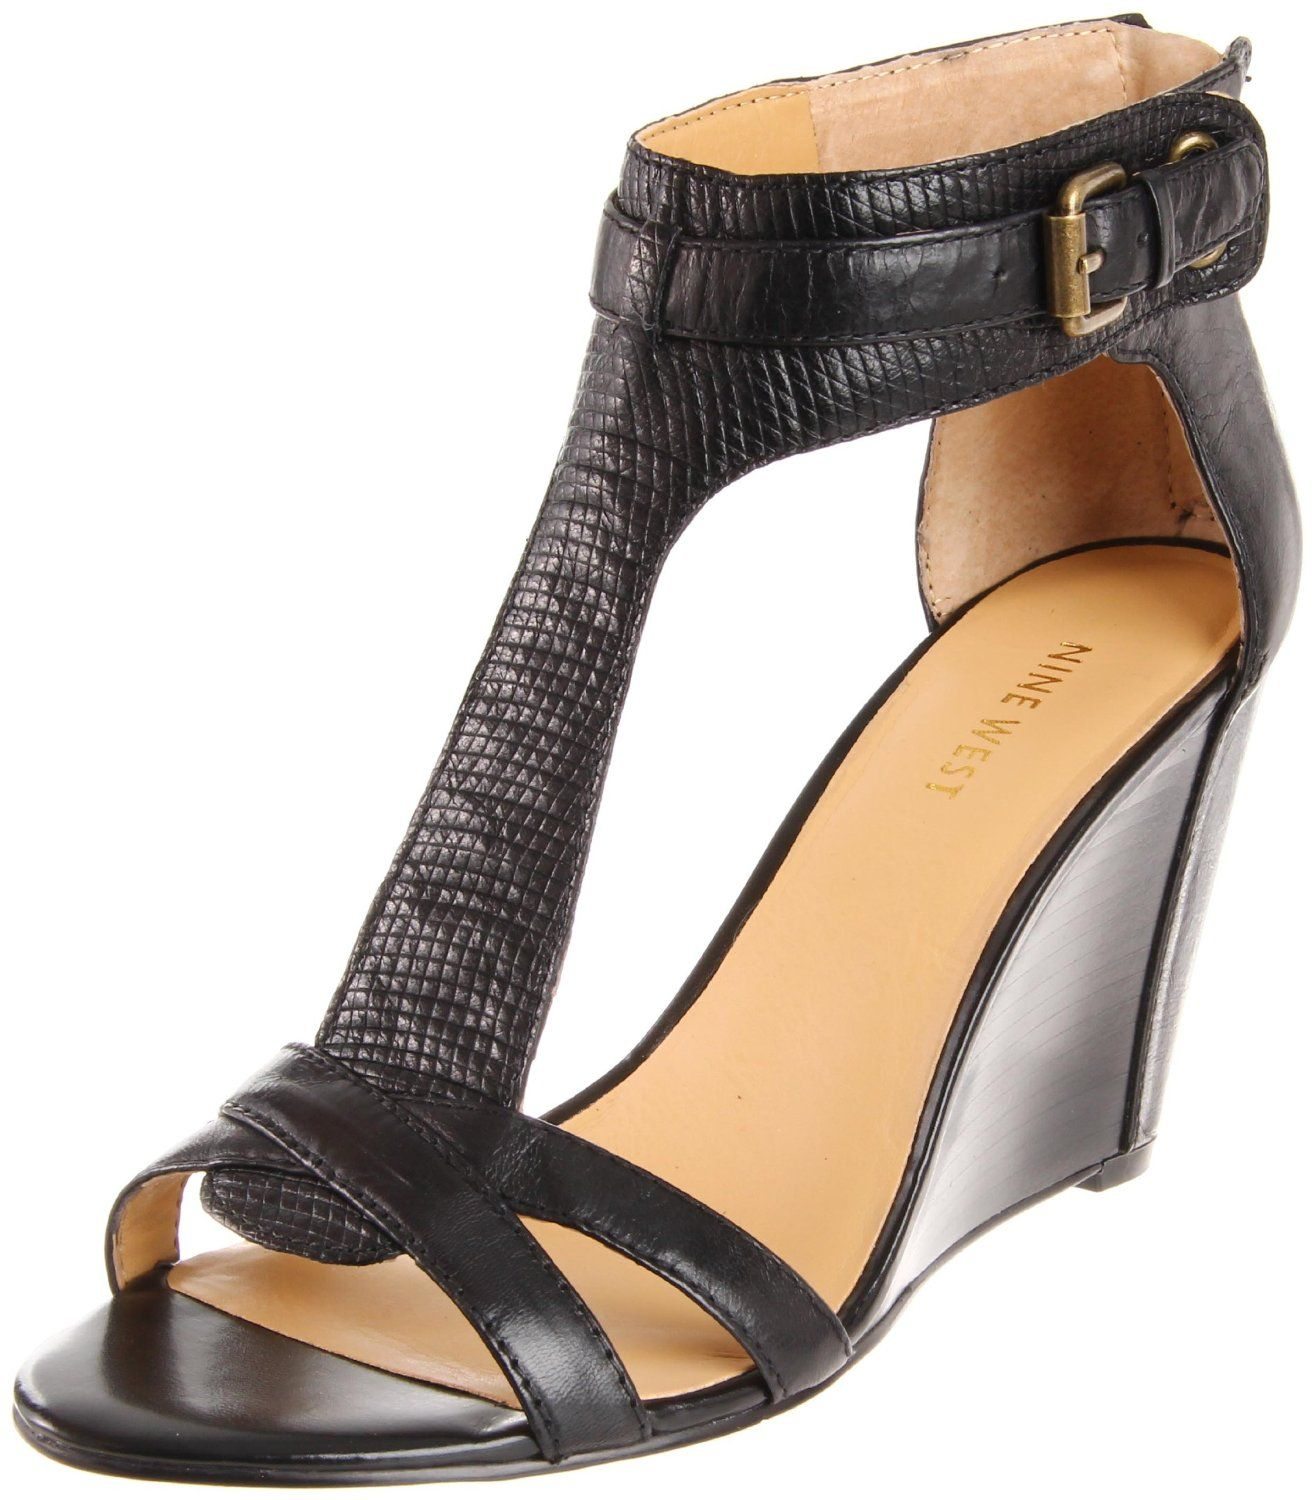 Black sandals shoes